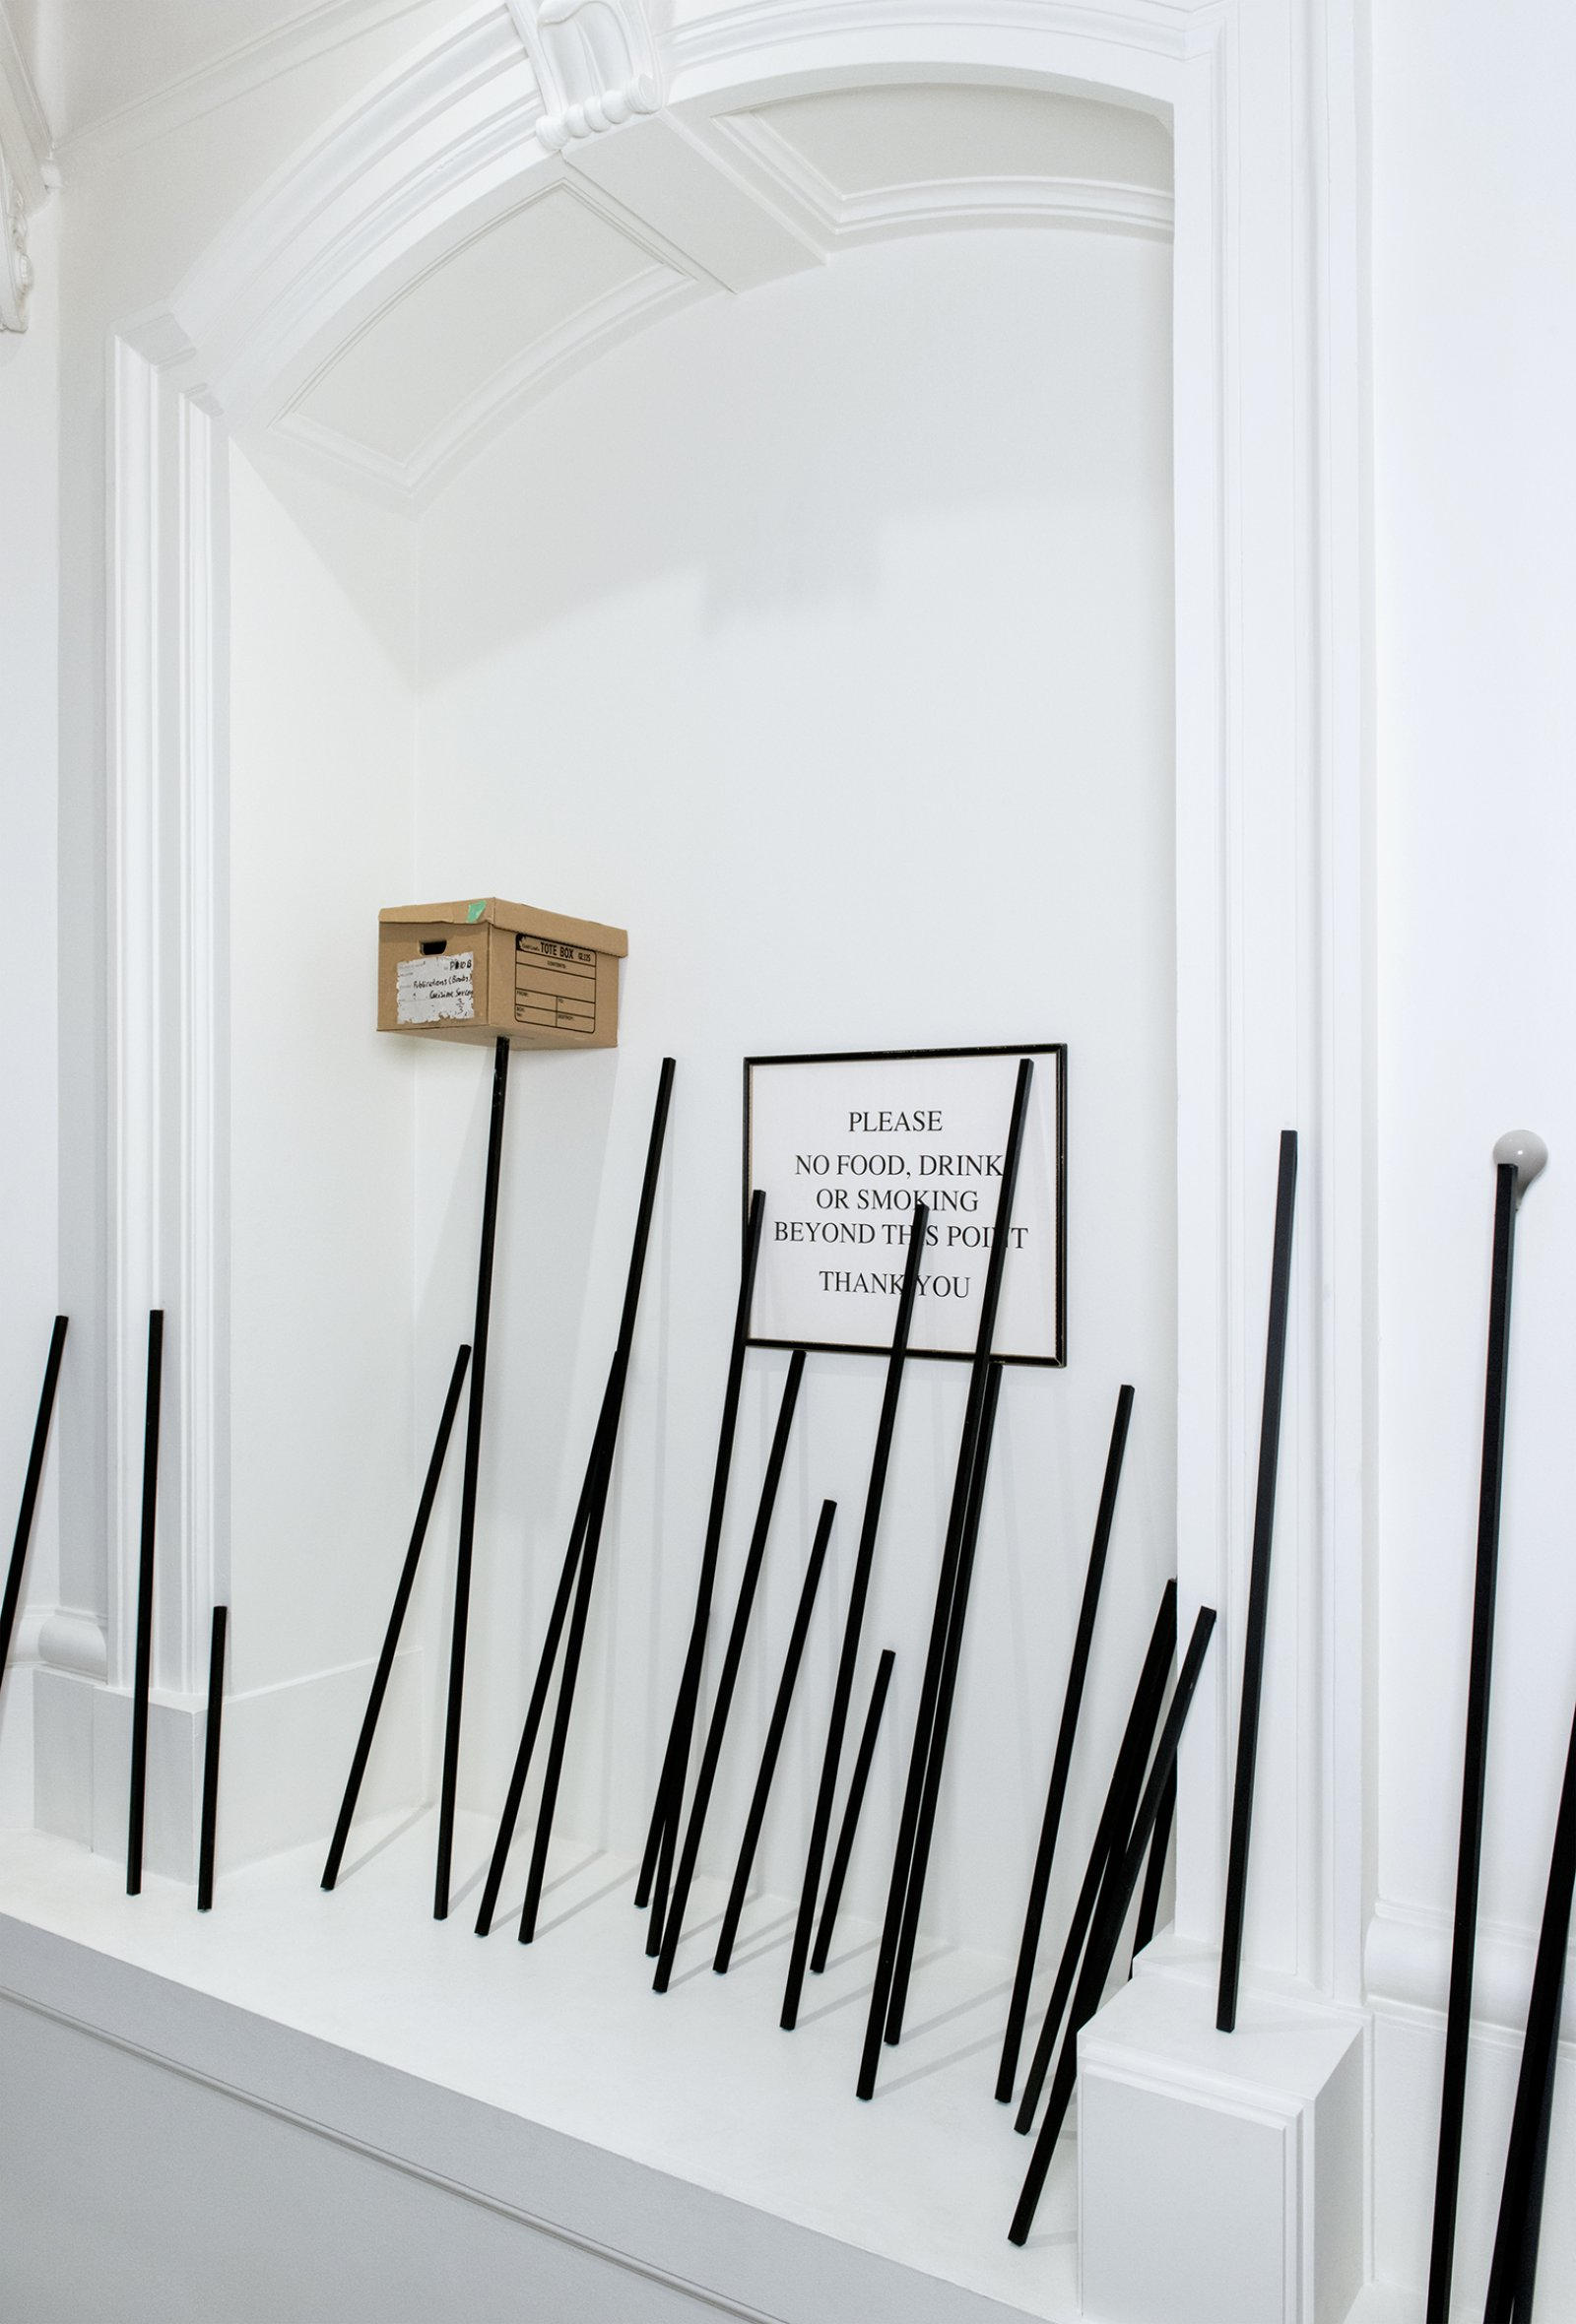 Geoffrey Farmer, Four Frankensteins, 2015, mixed media, dimensions variable. Installation view, How Do I Fit This Ghost in My Mouth?, Vancouver Art Gallery, 2015 by Geoffrey Farmer